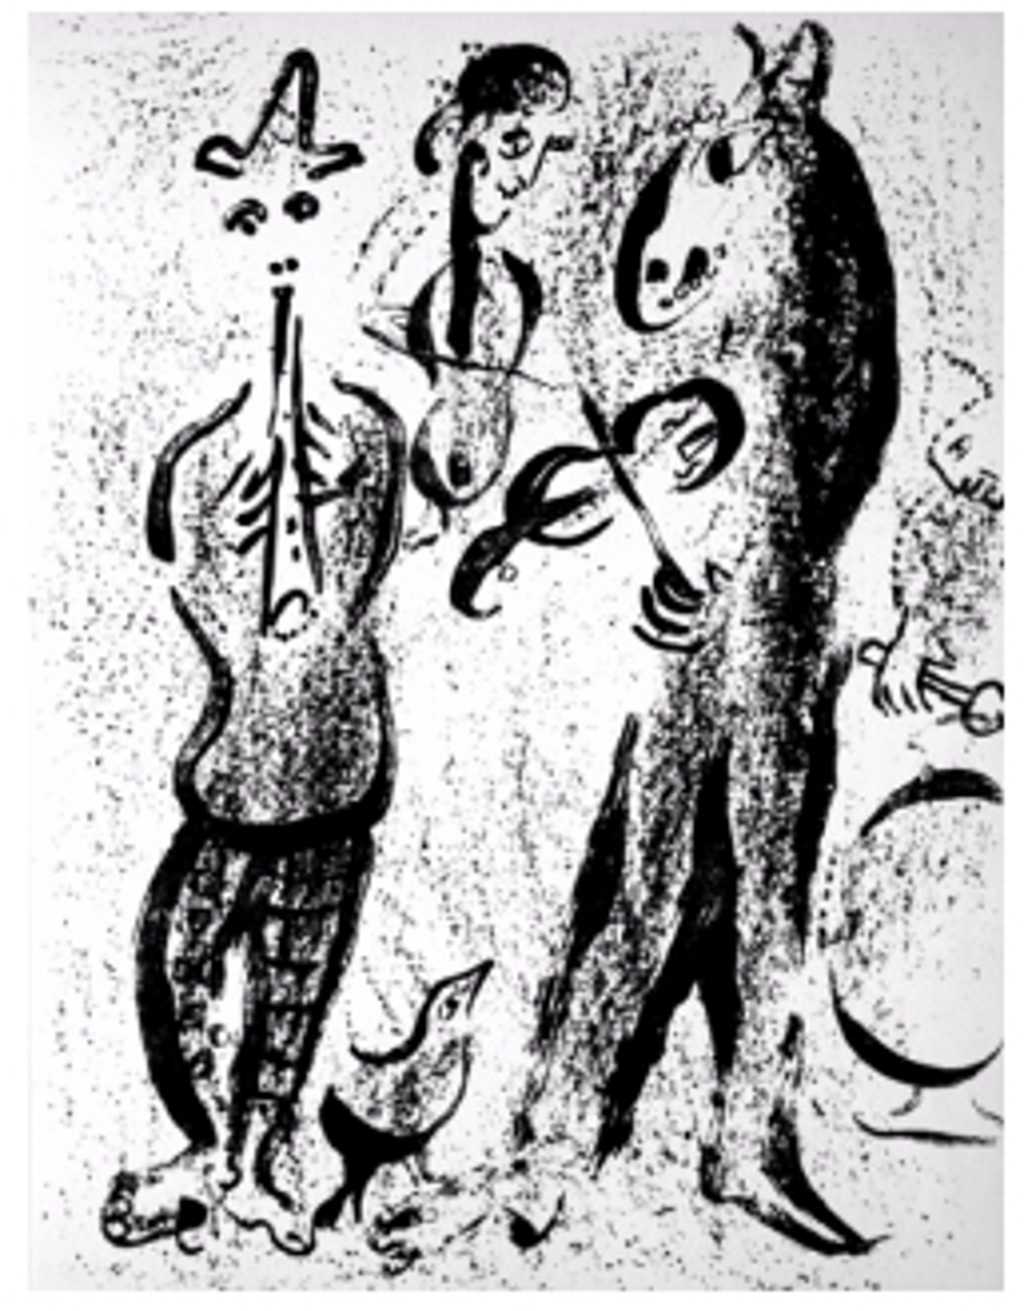 Itinerant Players from Chagall Lithographs I by Marc Chagall (1887 - 1985)